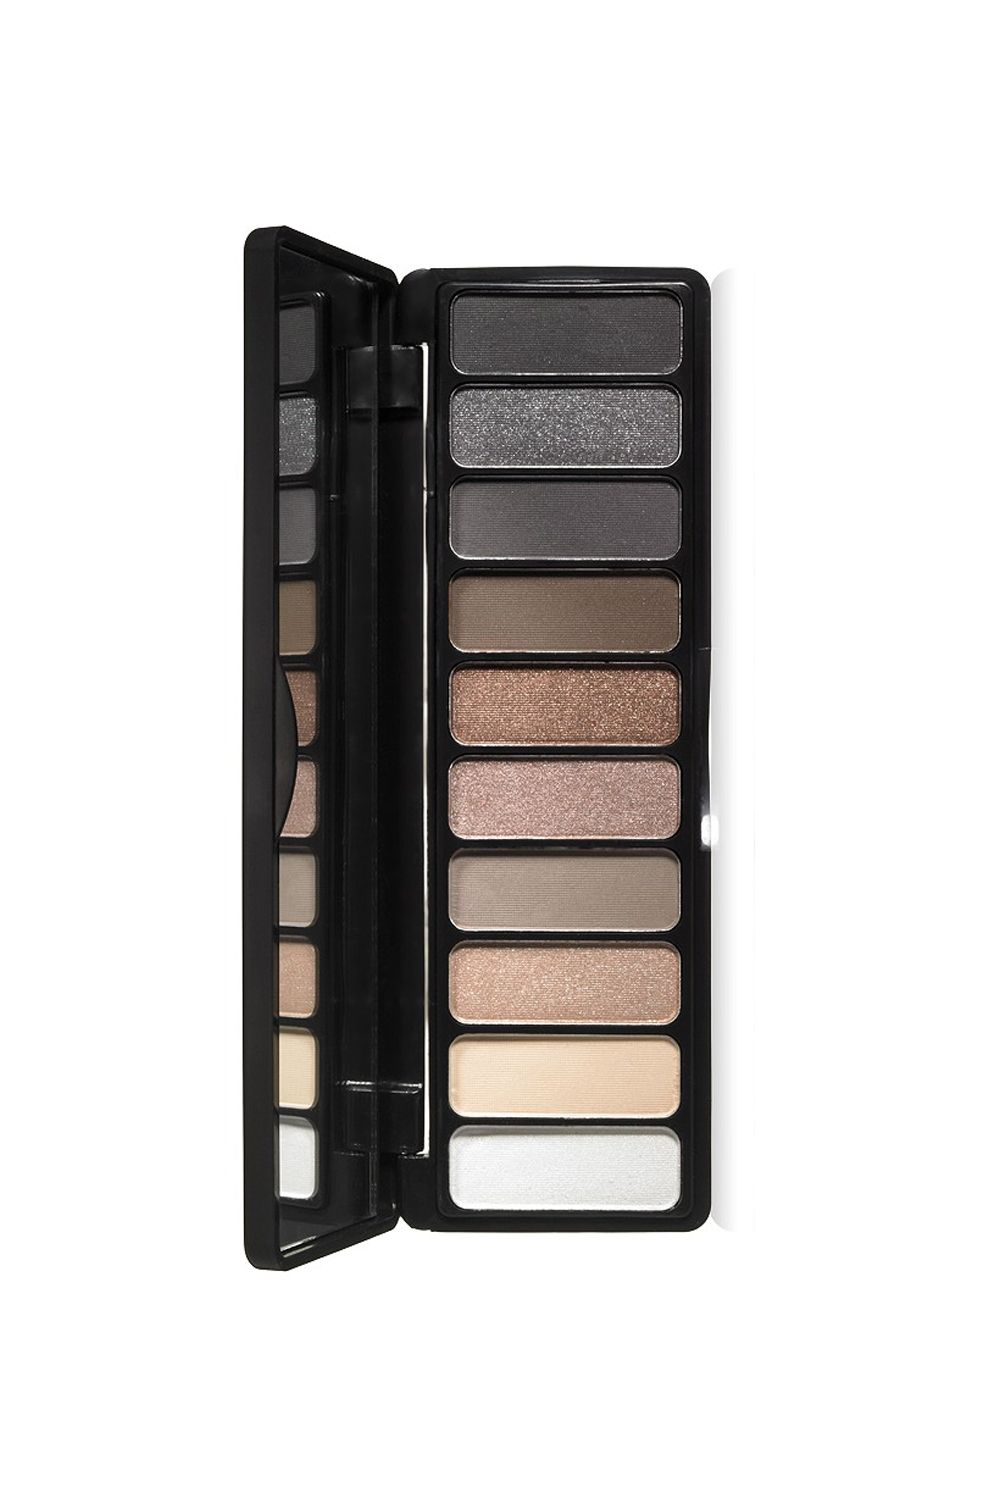 "<p>Most smoky palettes give you a billion glitter-packed shades you'll never use again, but this 10-shadow palette has an even mix of shimmery and satin shades in apricot to slate shades that you'll want to use long after Saturday night.<span class=""redactor-invisible-space"" data-verified=""redactor"" data-redactor-tag=""span"" data-redactor-class=""redactor-invisible-space""></span></p><p><i data-redactor-tag=""i"">E.l.f. Everyday Smoky Eyeshadow Palette, $10</i></p><p><strong data-redactor-tag=""strong"">BUY IT: <a href=""http://www.ulta.com/everyday-smoky-eyeshadow-palette?productId=xlsImpprod14521203"">ulta.com</a>. </strong></p>"